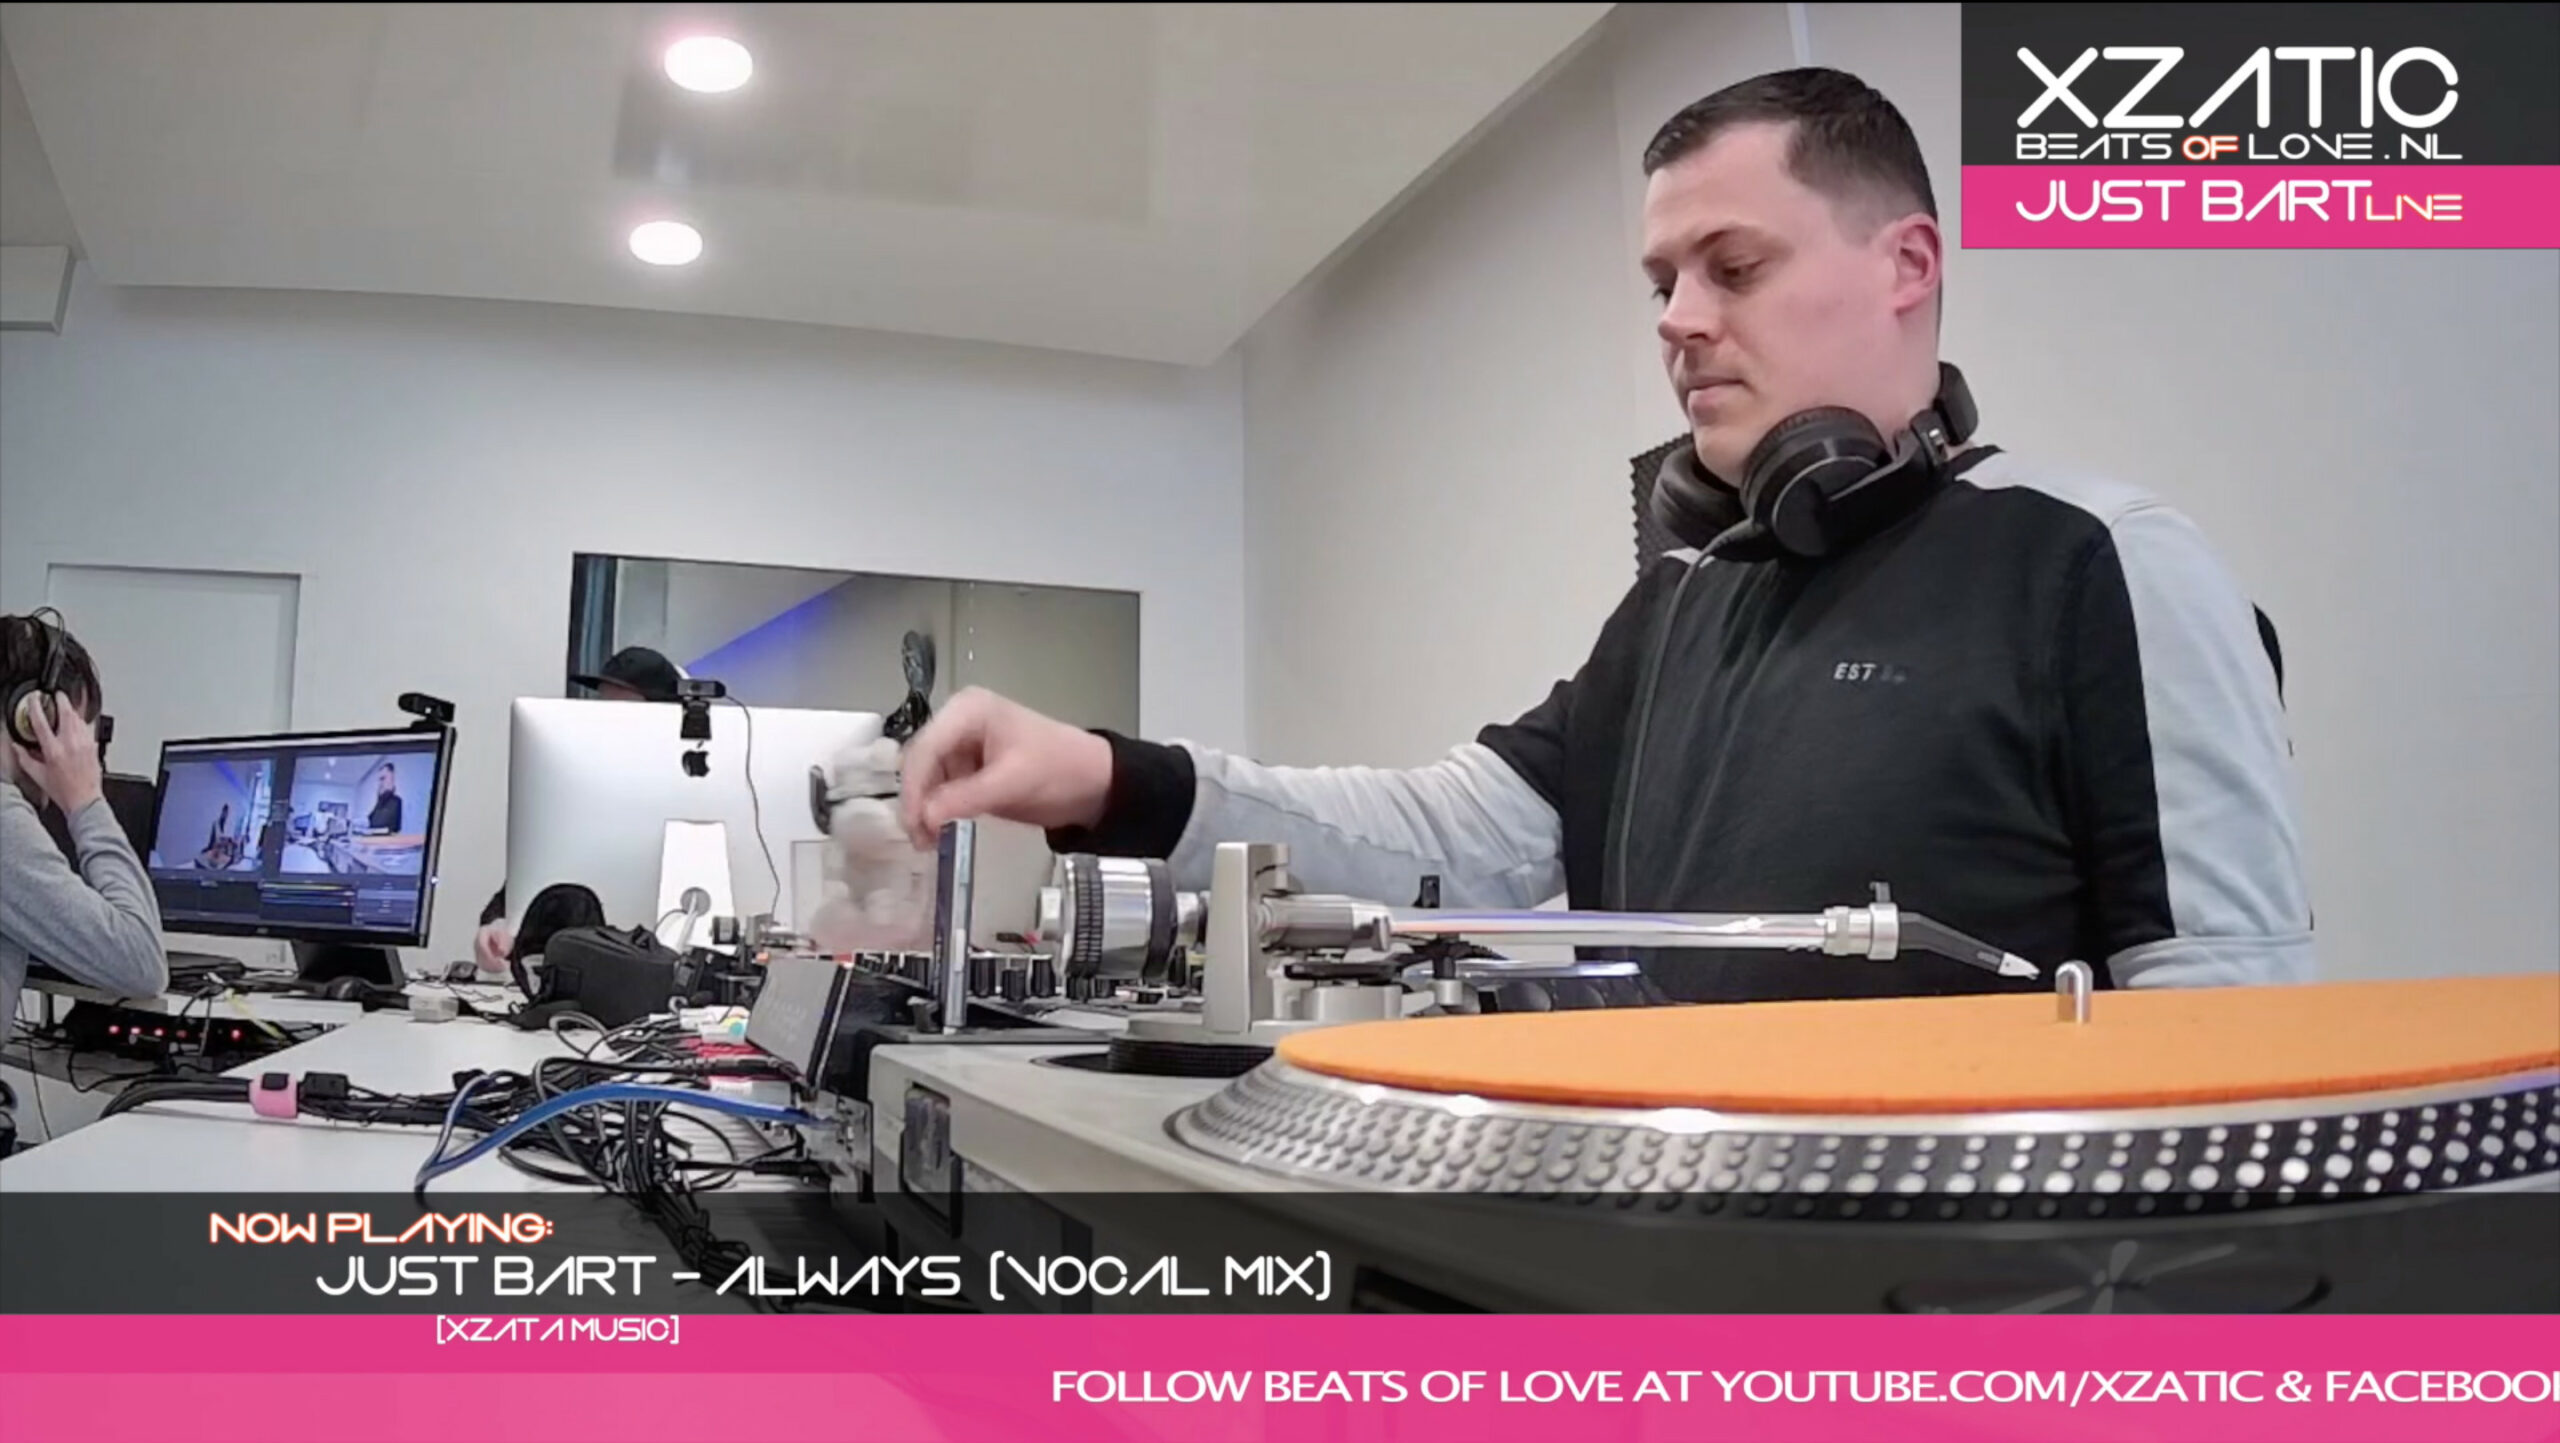 Xzatic presents Beats Of Love with Just bart